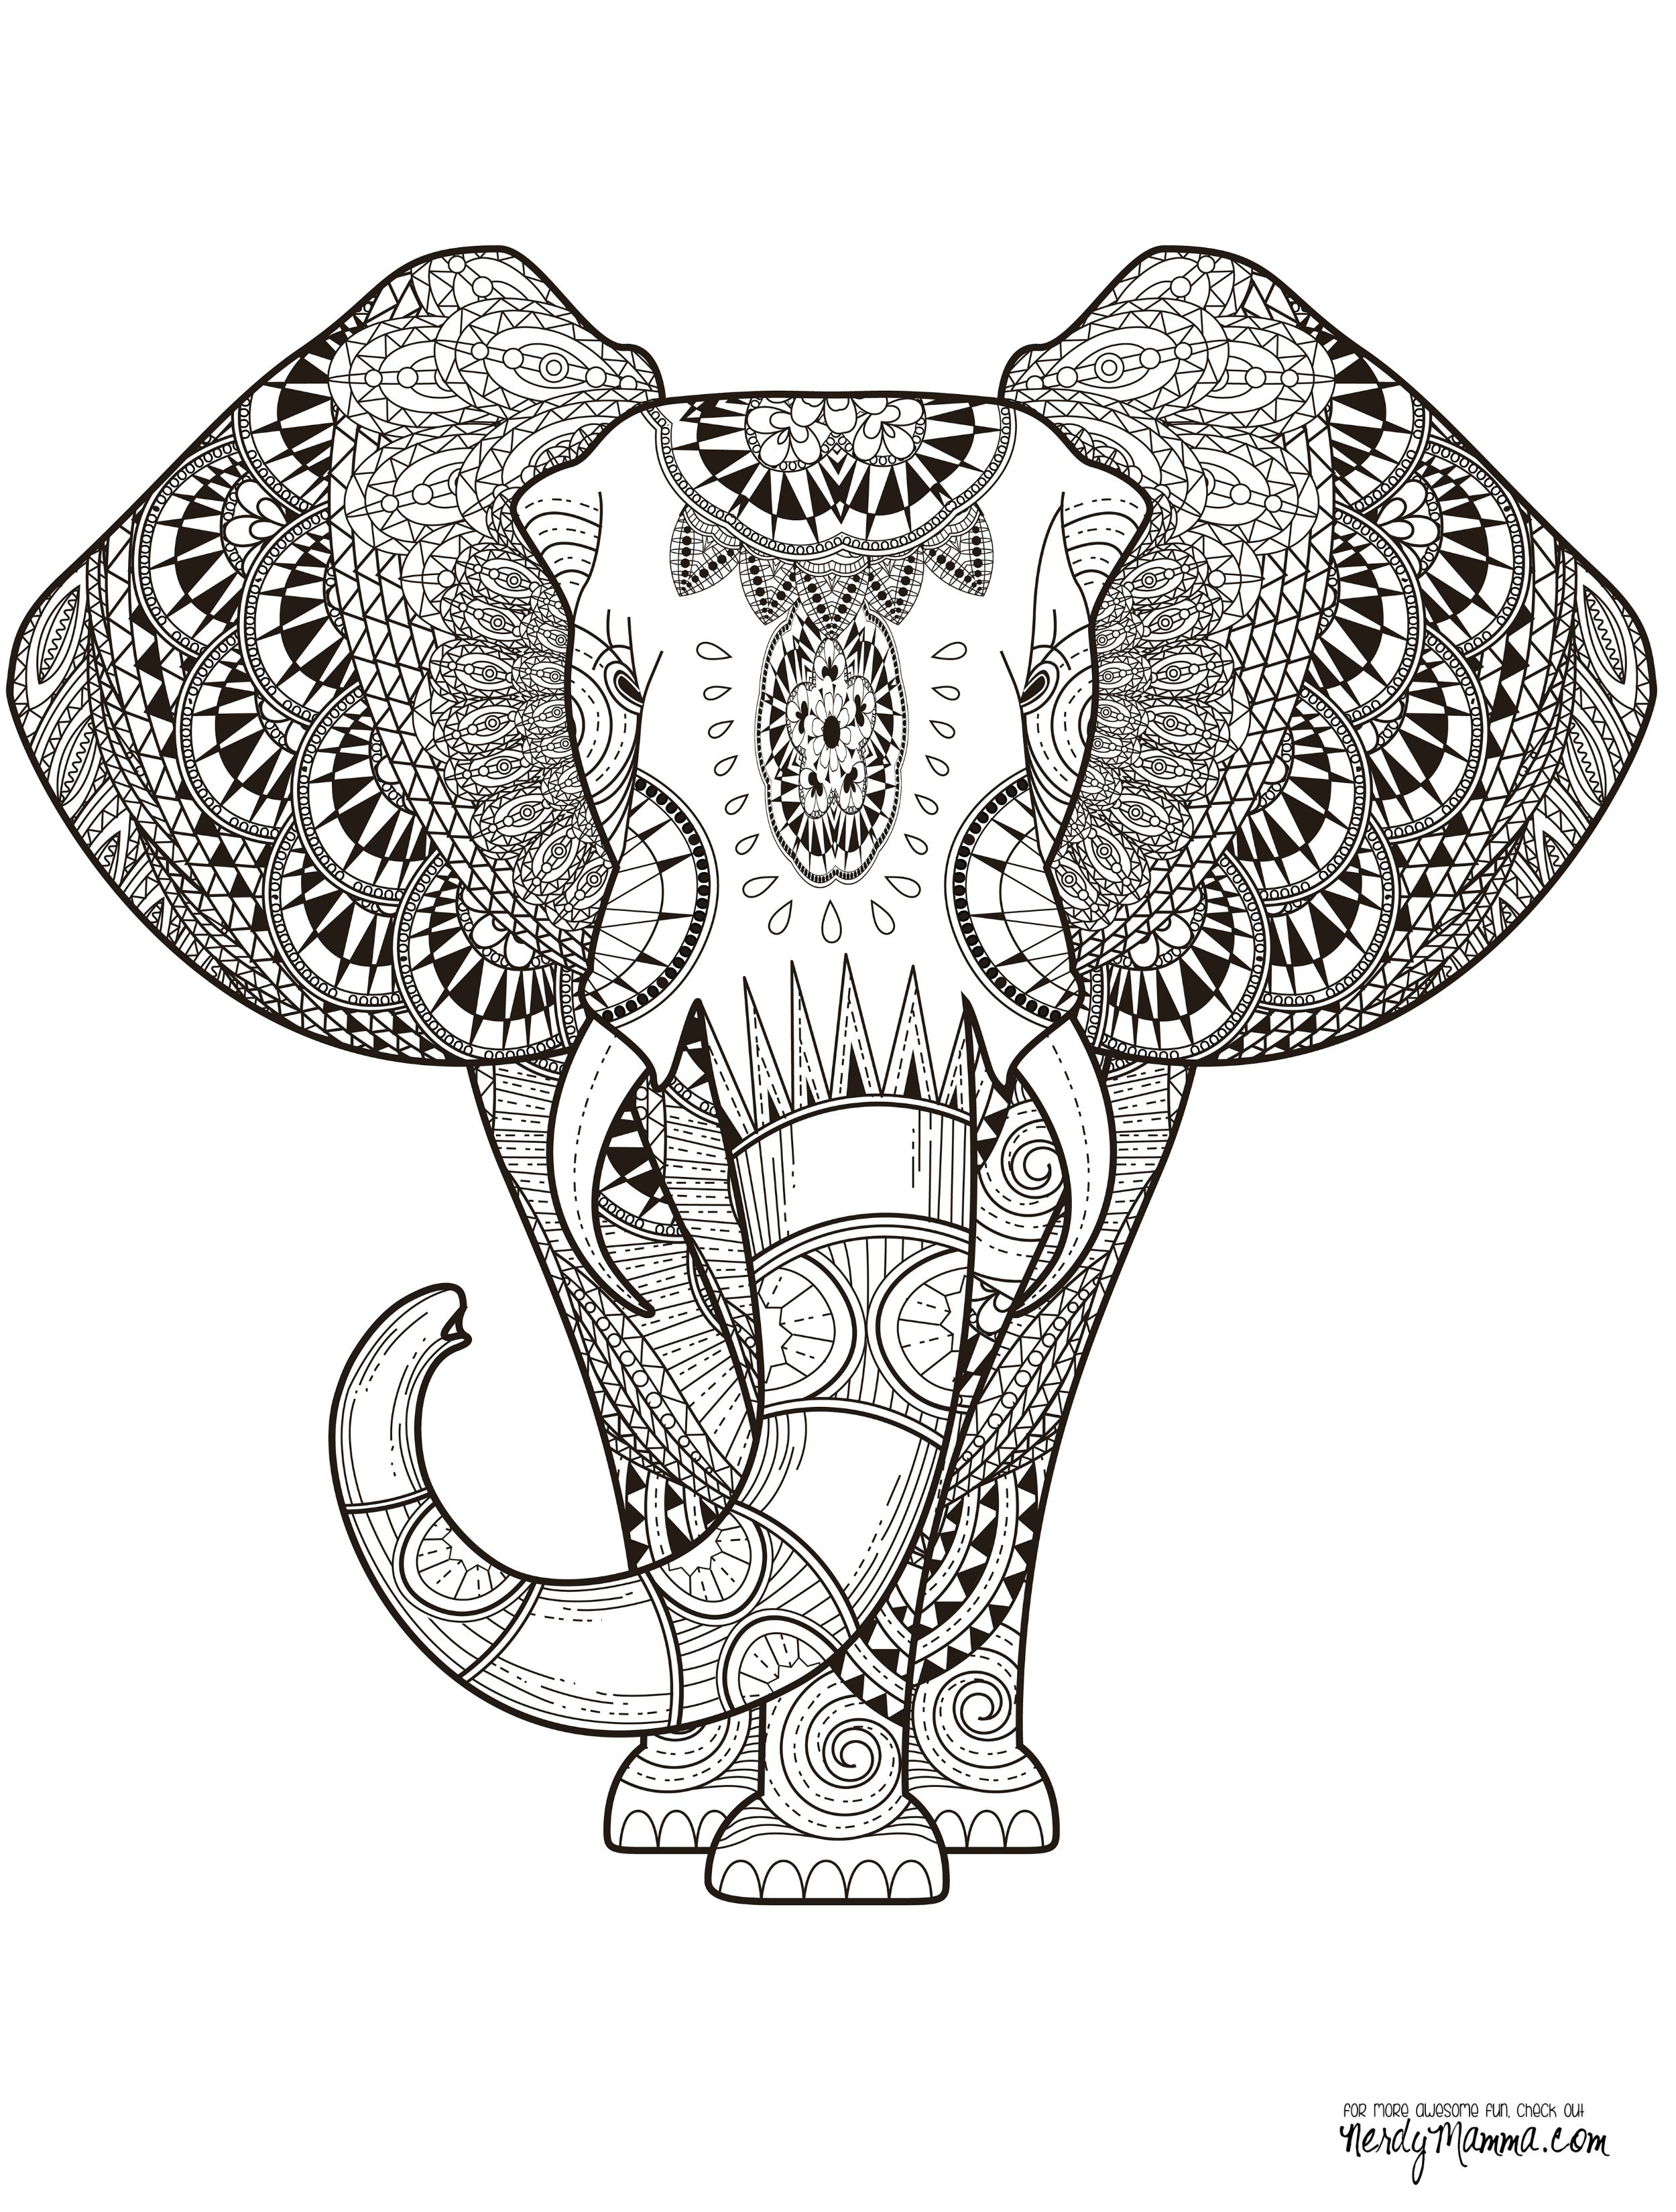 Elephant Coloring Book For Adults  11 Free Printable Adult Coloring Pages